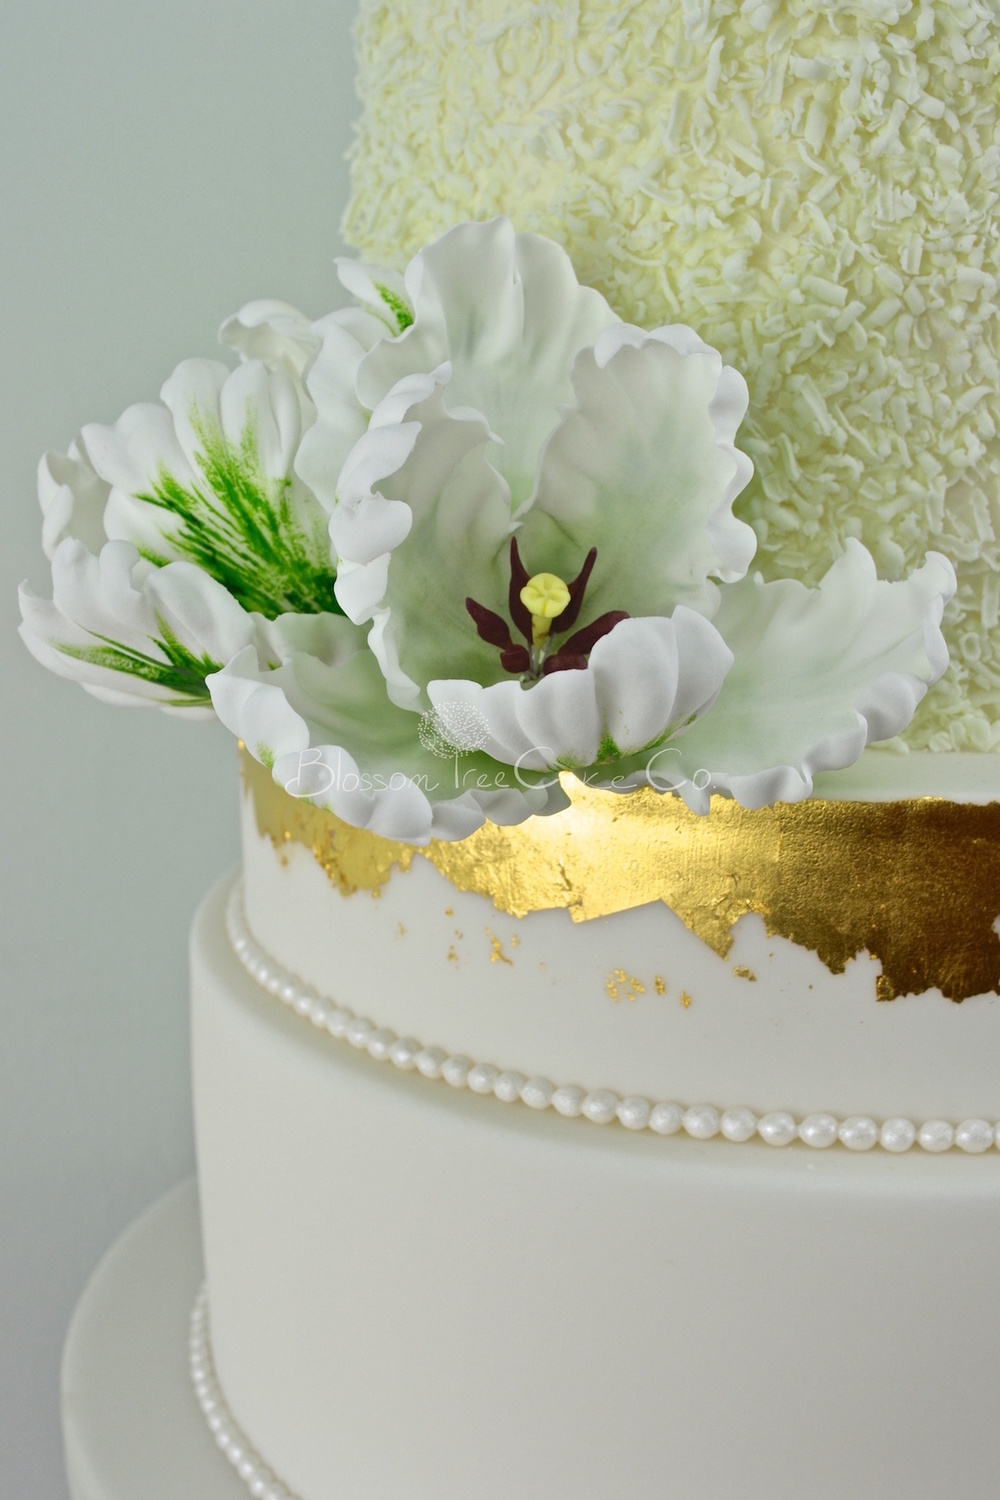 White and Green Parrot Tulips with Gold Leaf by Blossom Tree Cake Co Harrogate North Yorkshire_flower 3.jpg